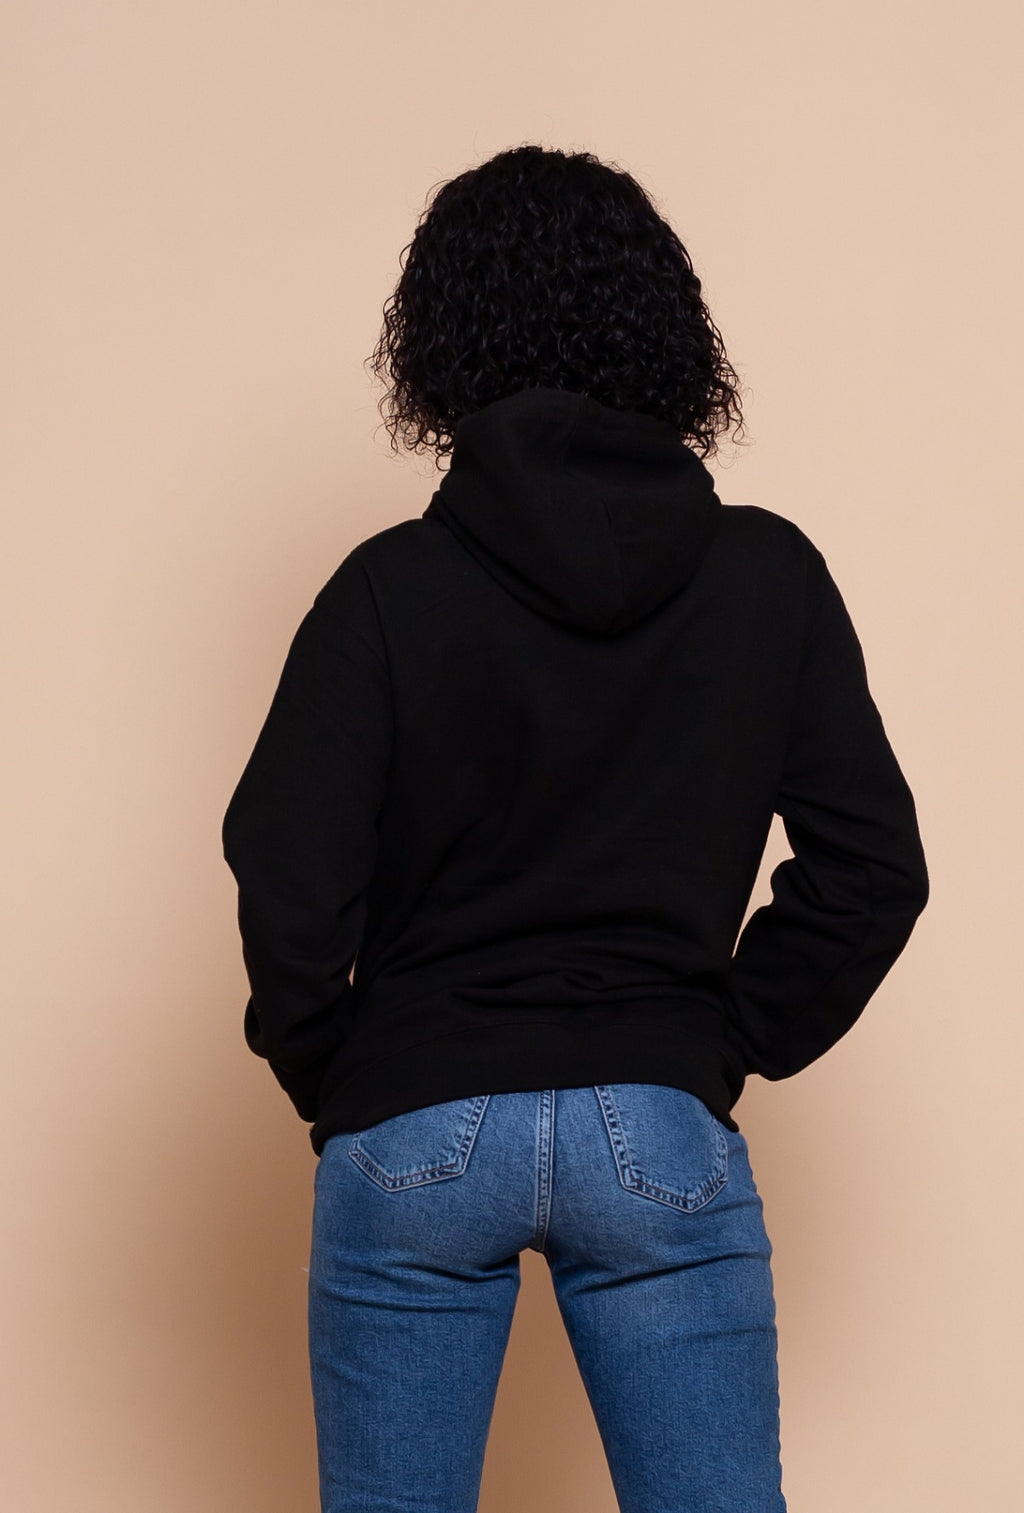 African Map Black Hoodie Top